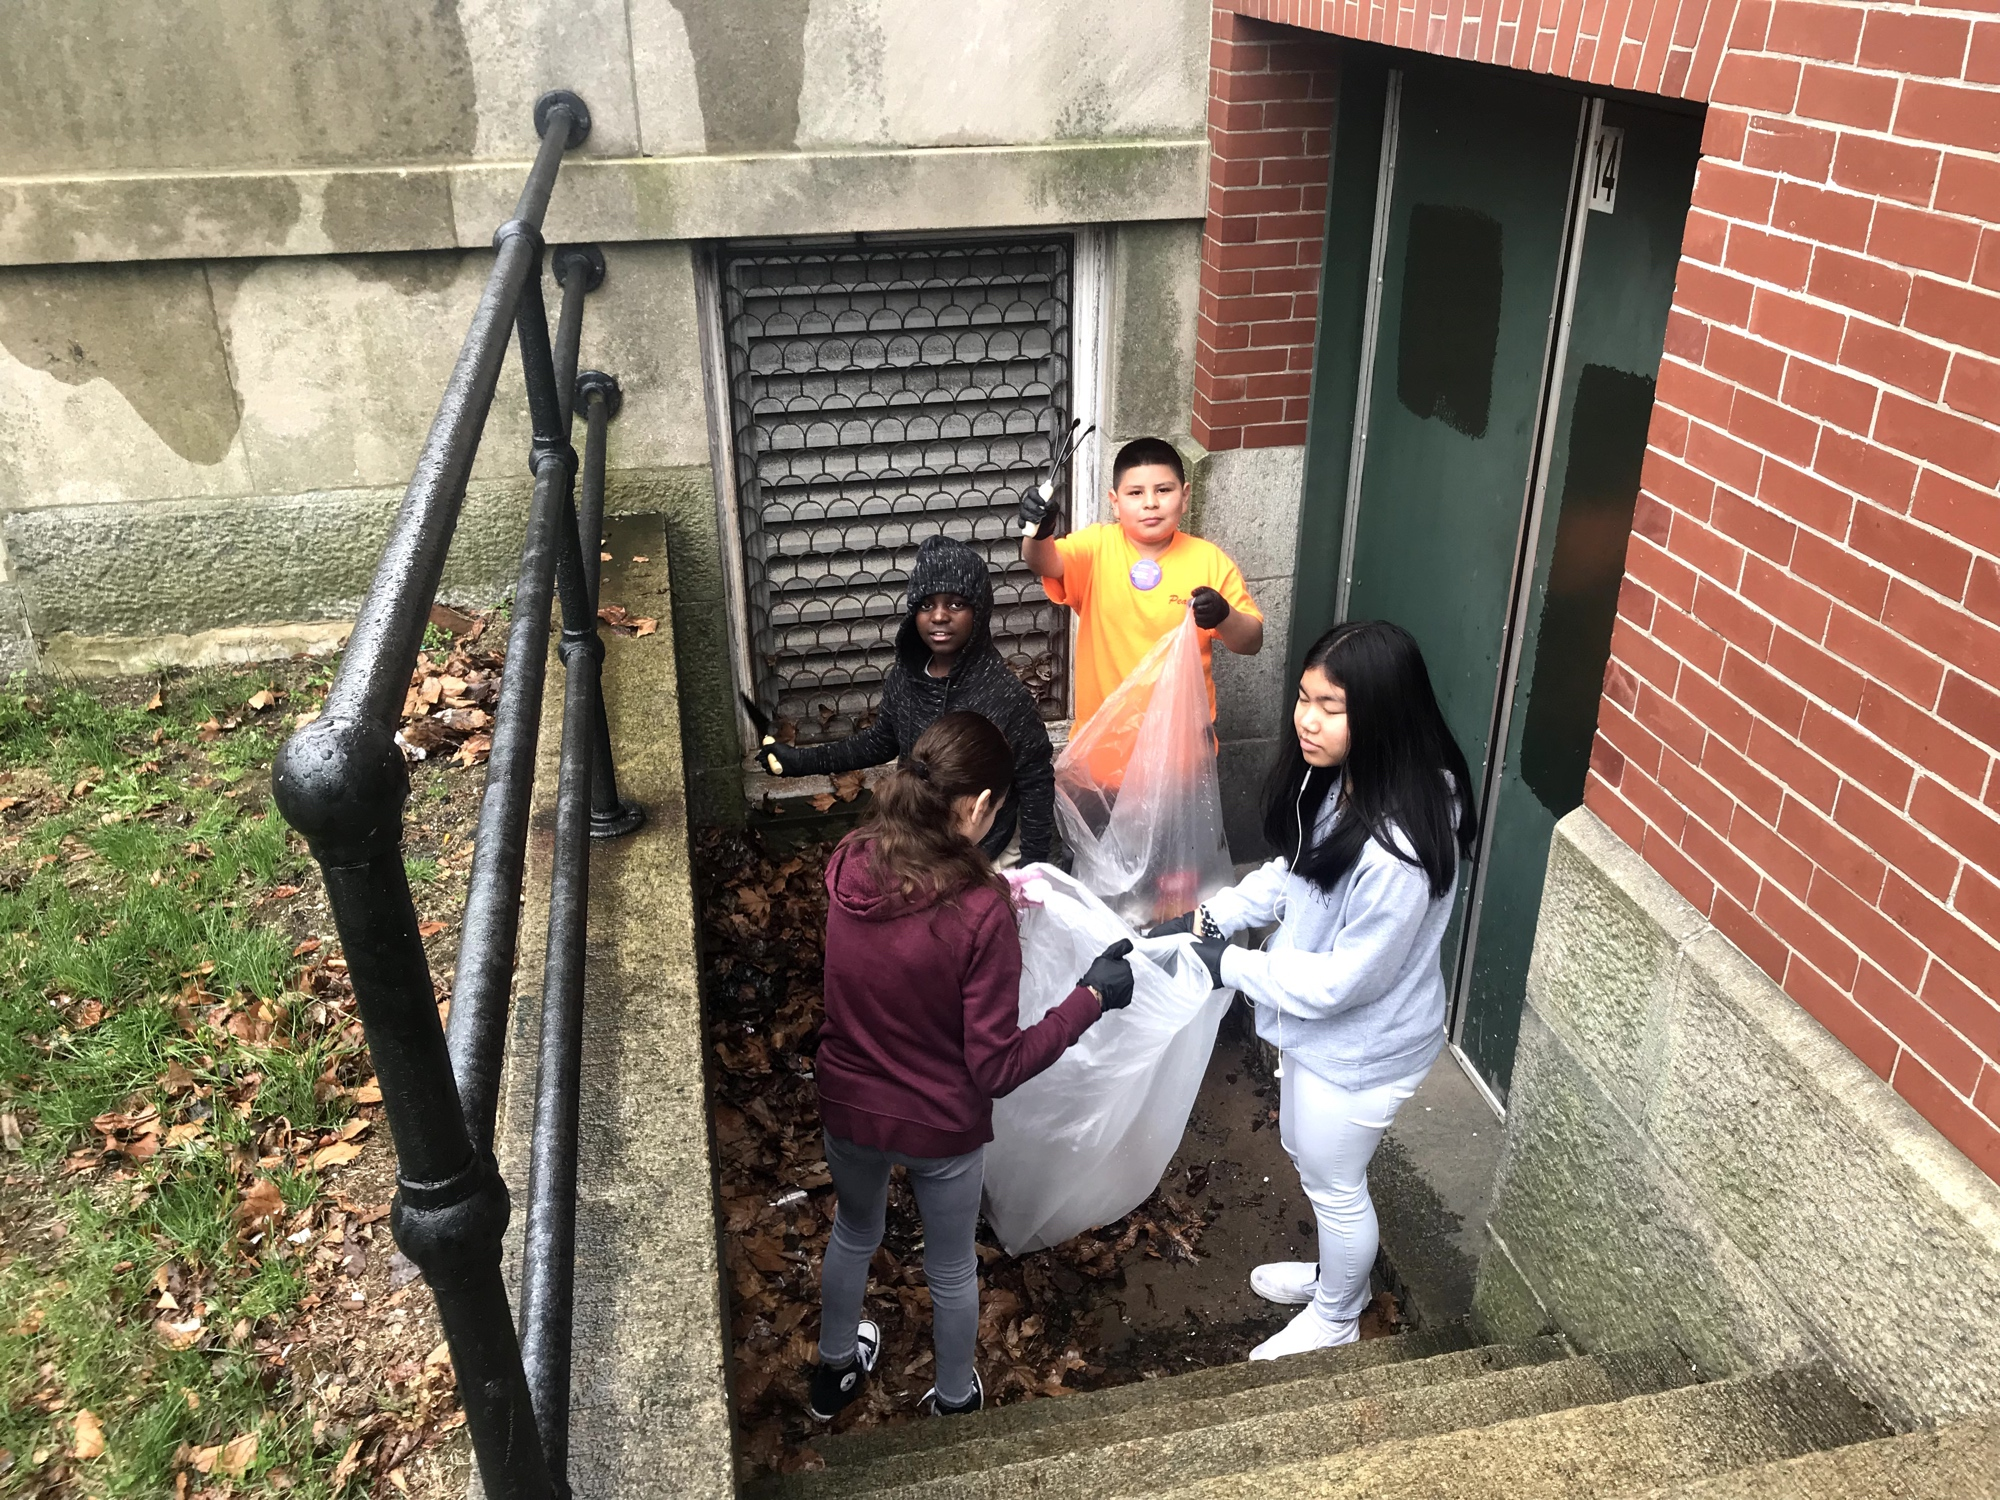 Earth Day Cleanup organized by the WBMS Student Council